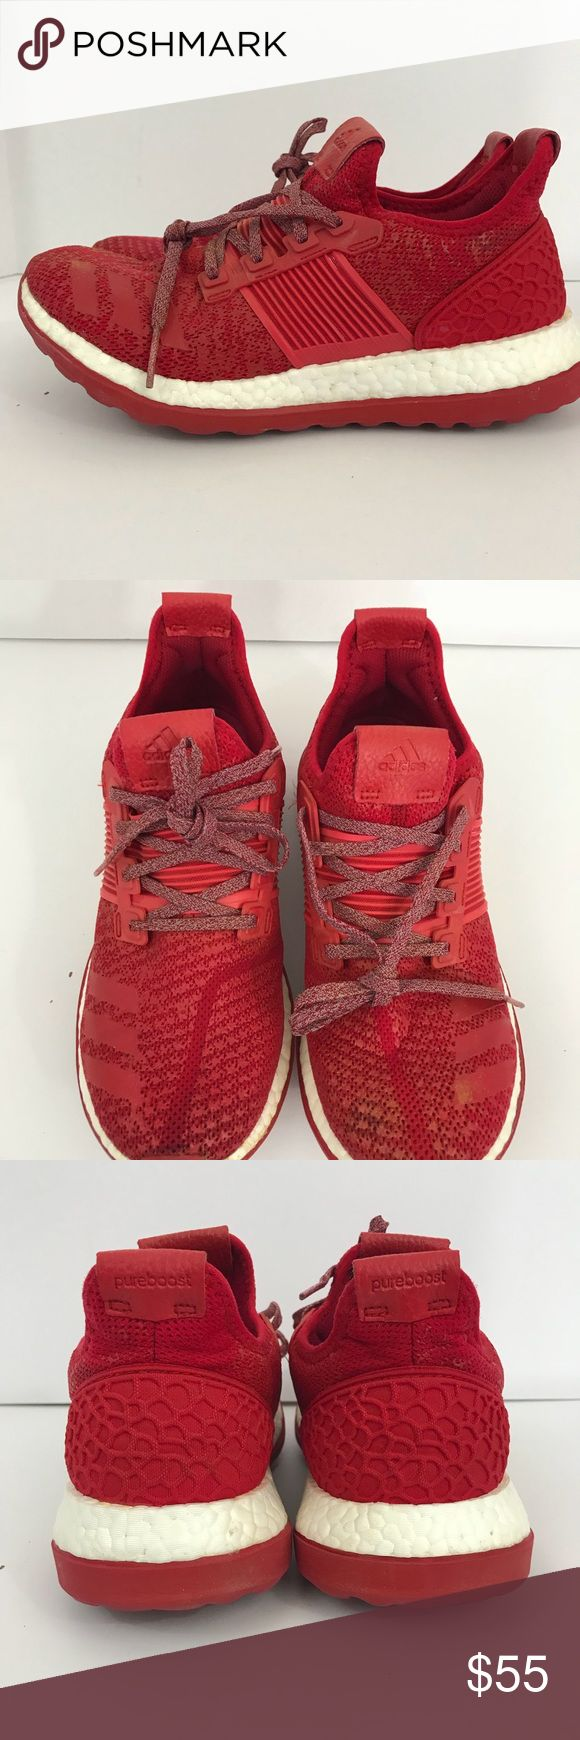 ❤️ Adidas Pure Boost Excellent Condition, all proceeds go to Charity adidas Shoes Sneakers